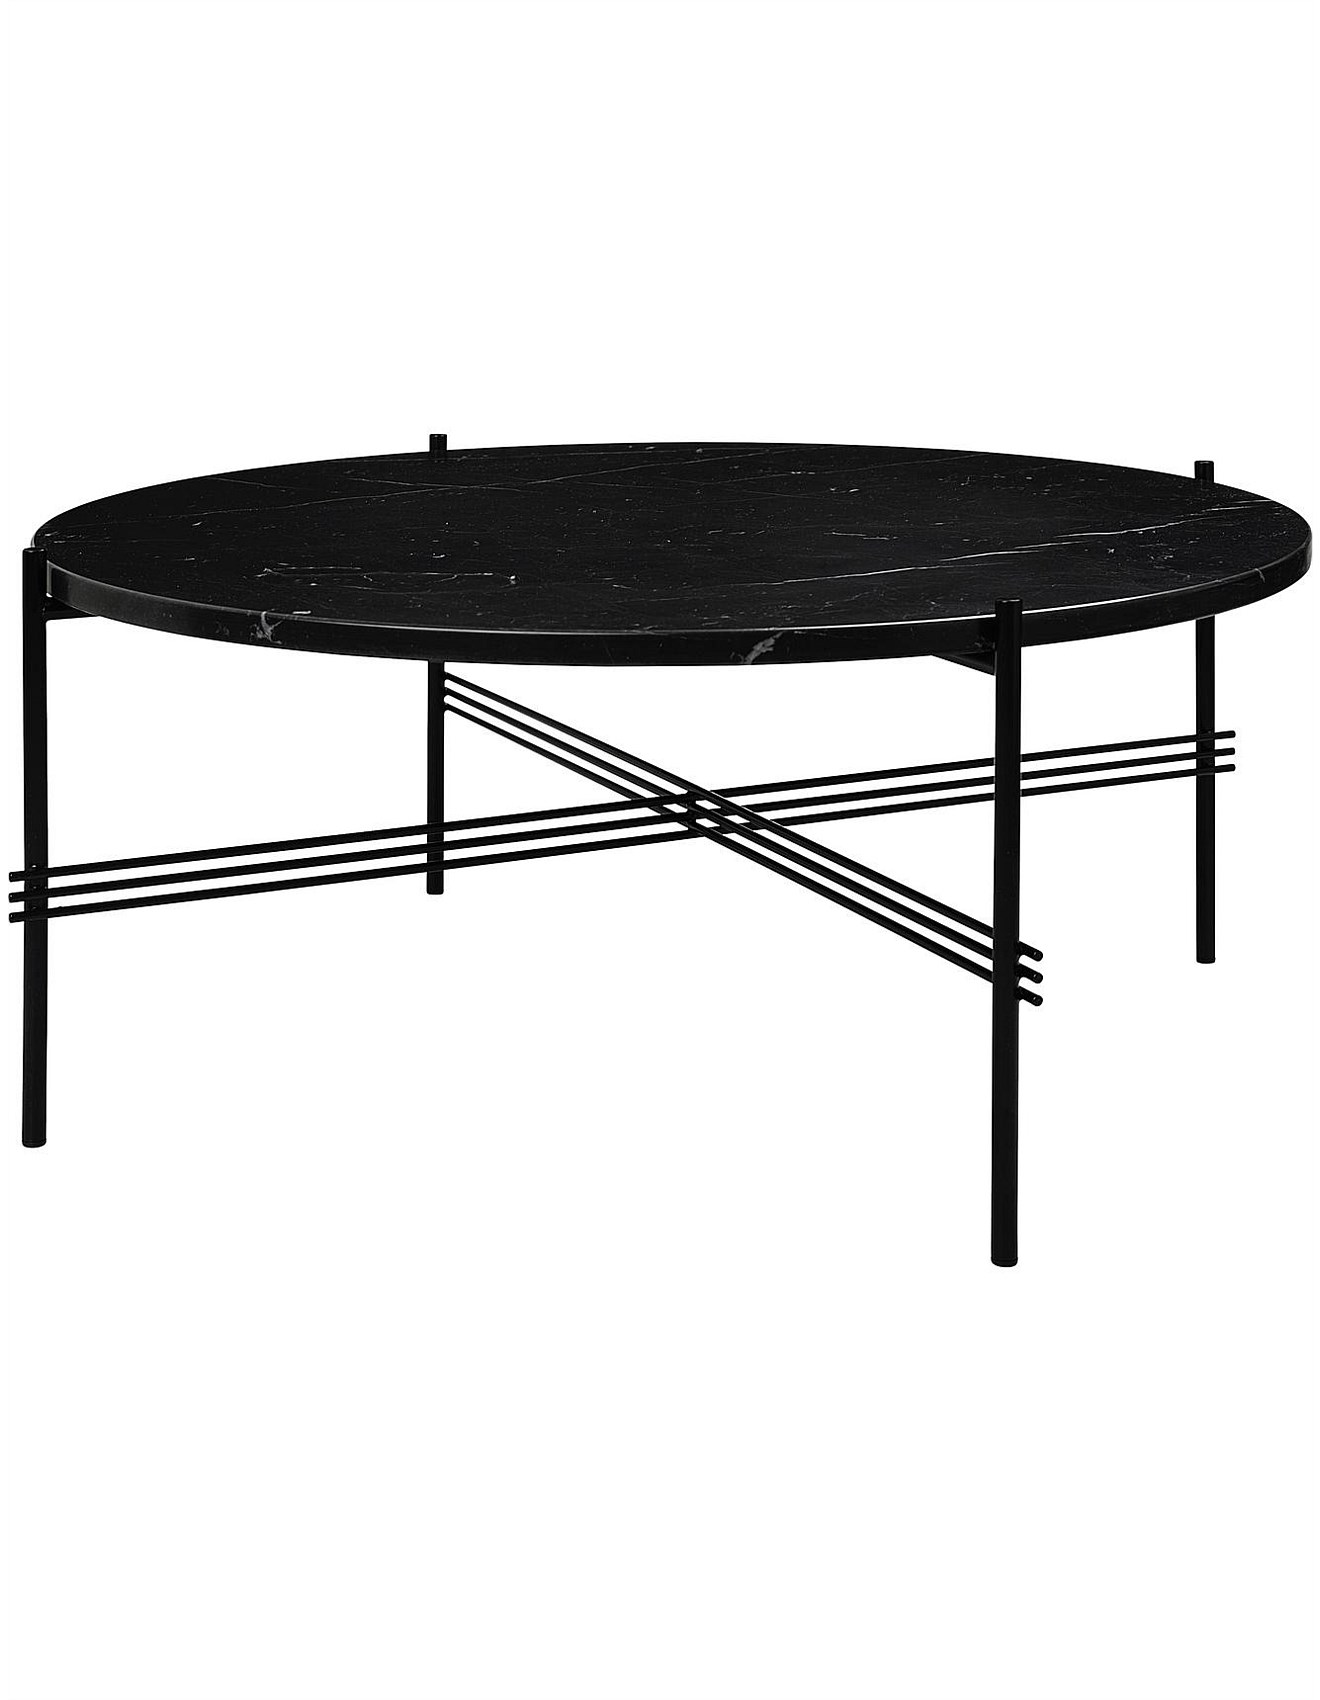 - Tables - TS Coffee Table Round 80cm Nero Marquina Marble (Black)